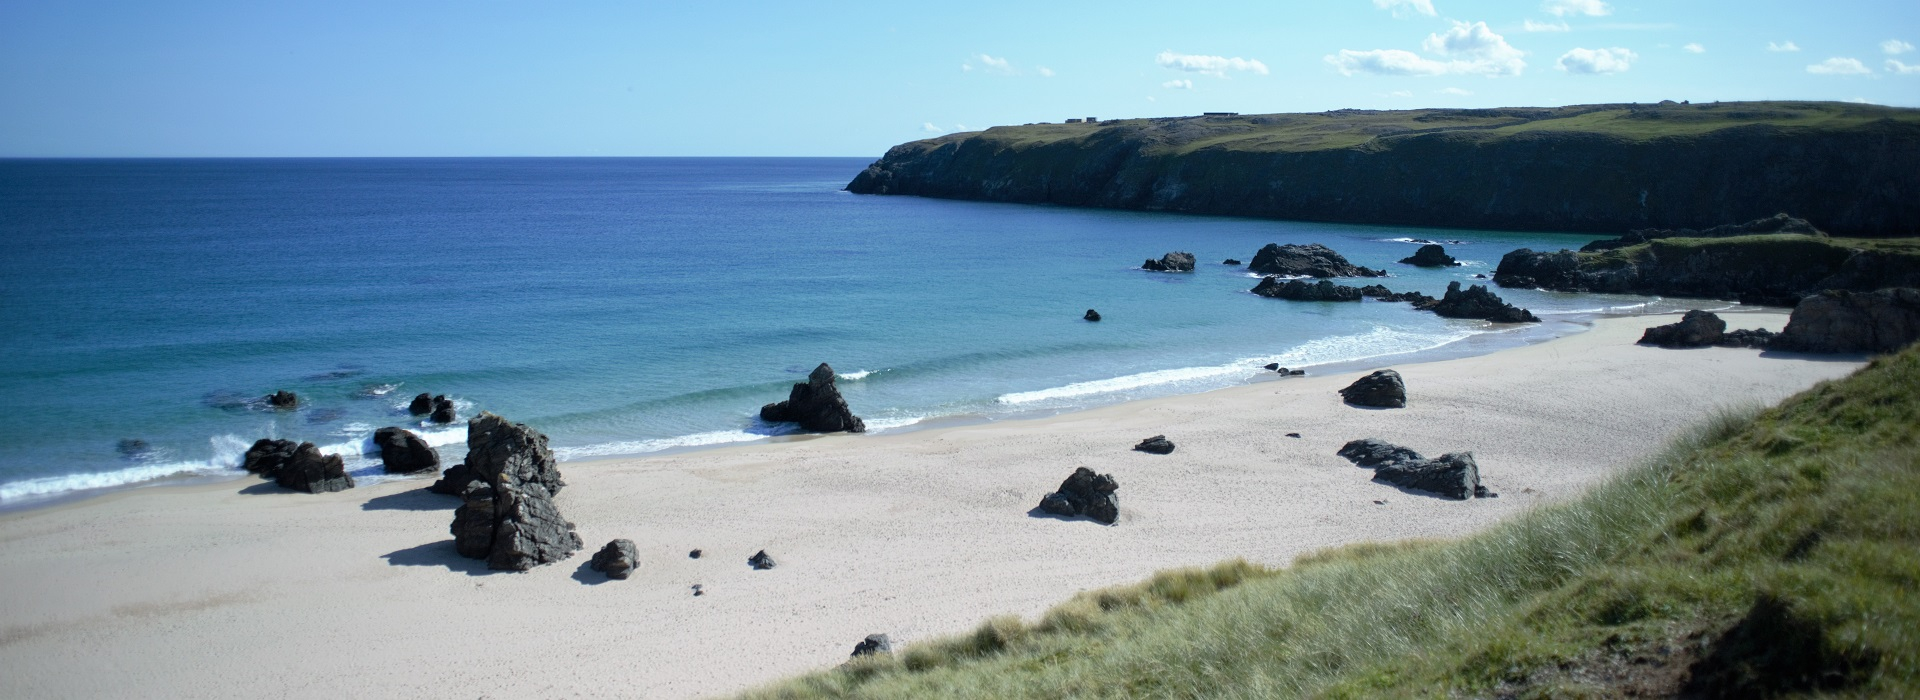 North Coast Beach near Durness